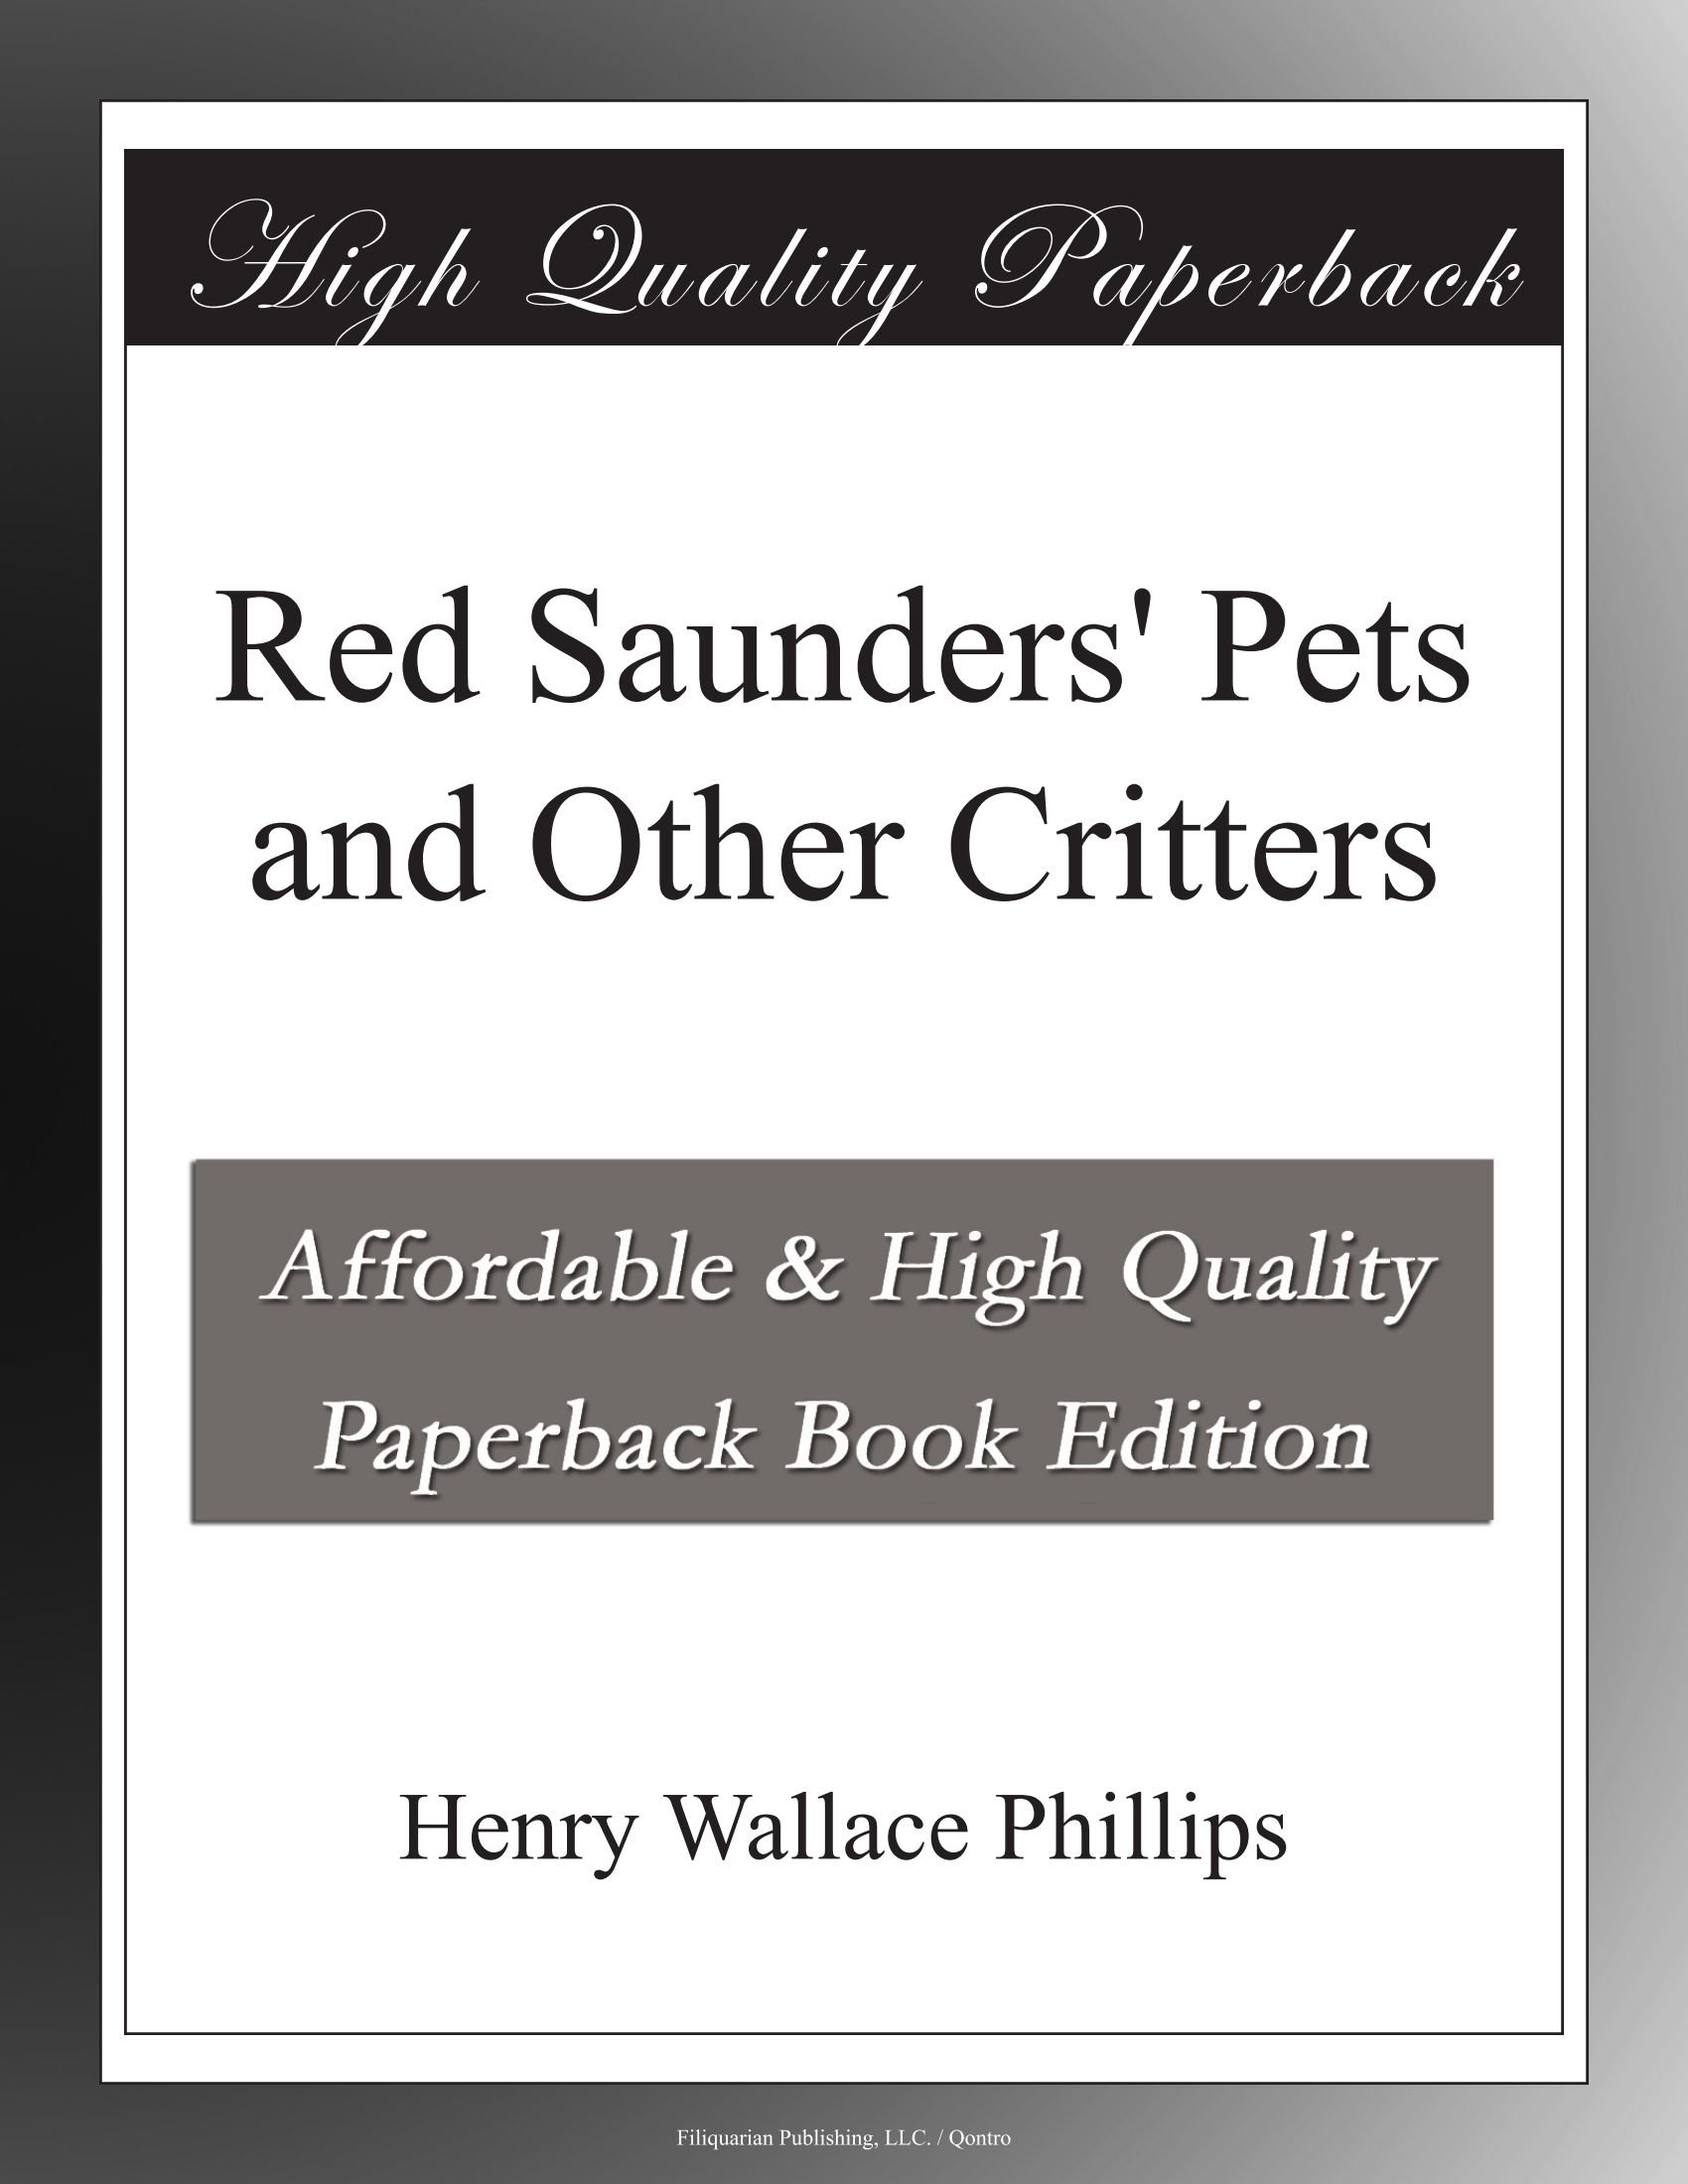 Red Saunders' Pets and Other Critters PDF